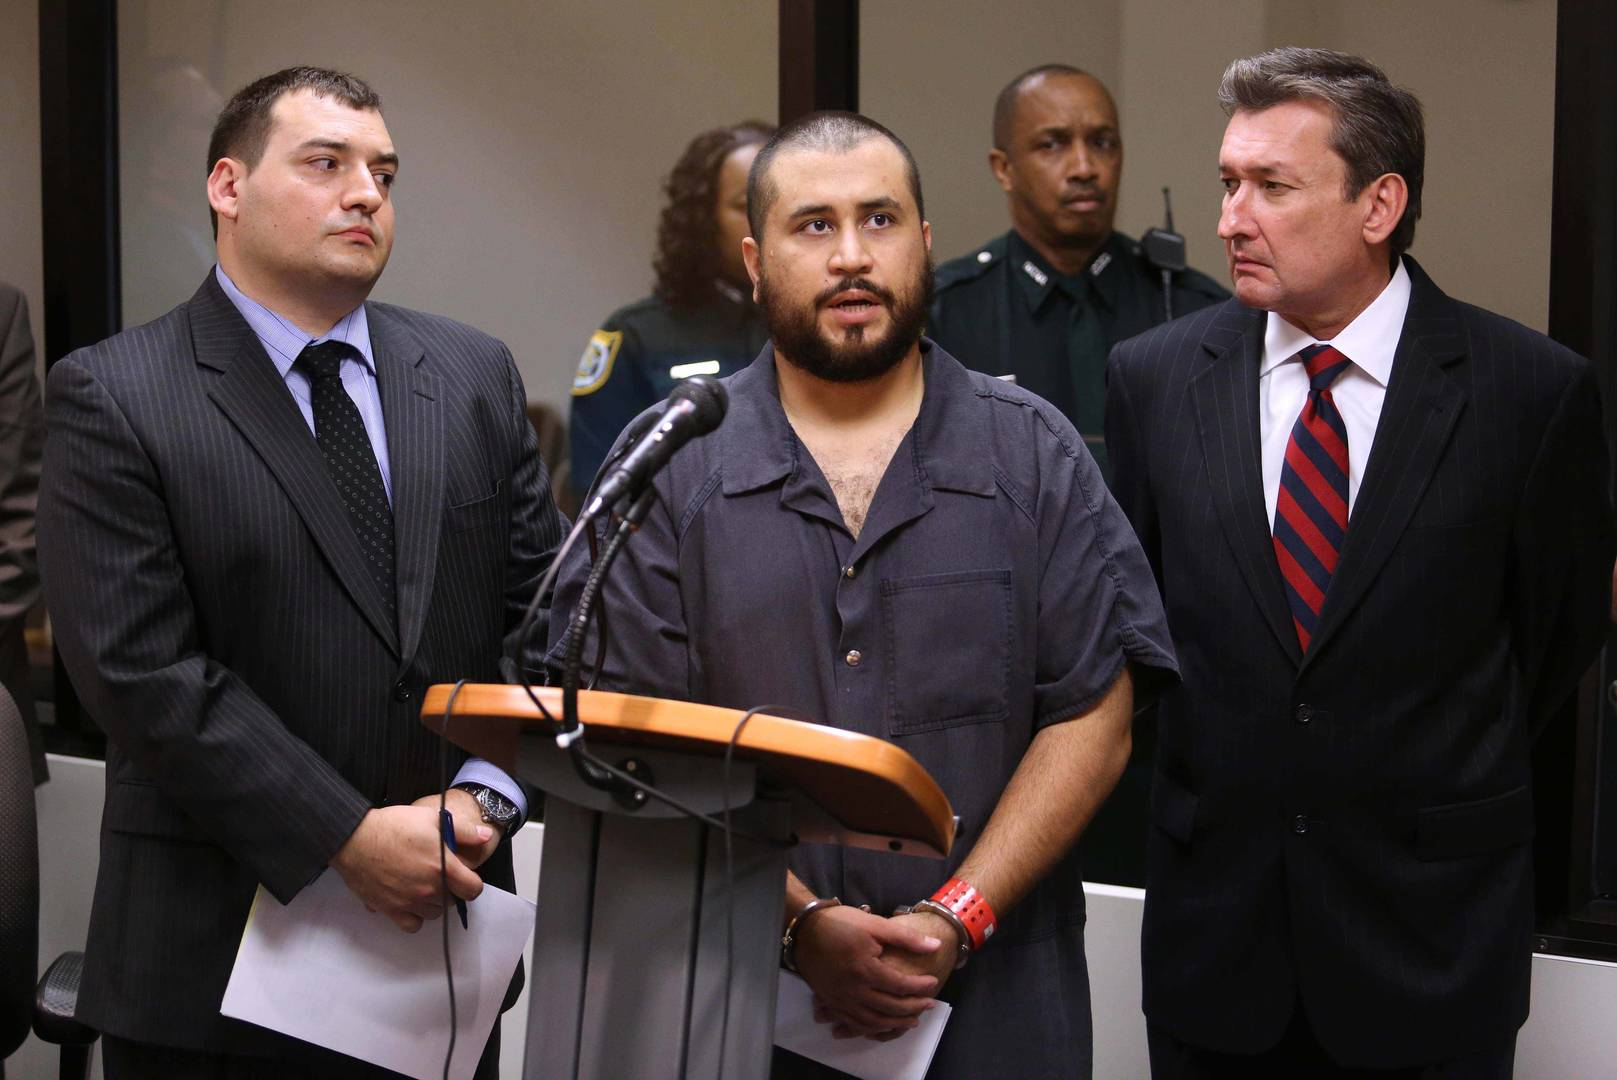 George Zimmerman Sues Trayvon Martin's Family & Prosecutors For $100 Million